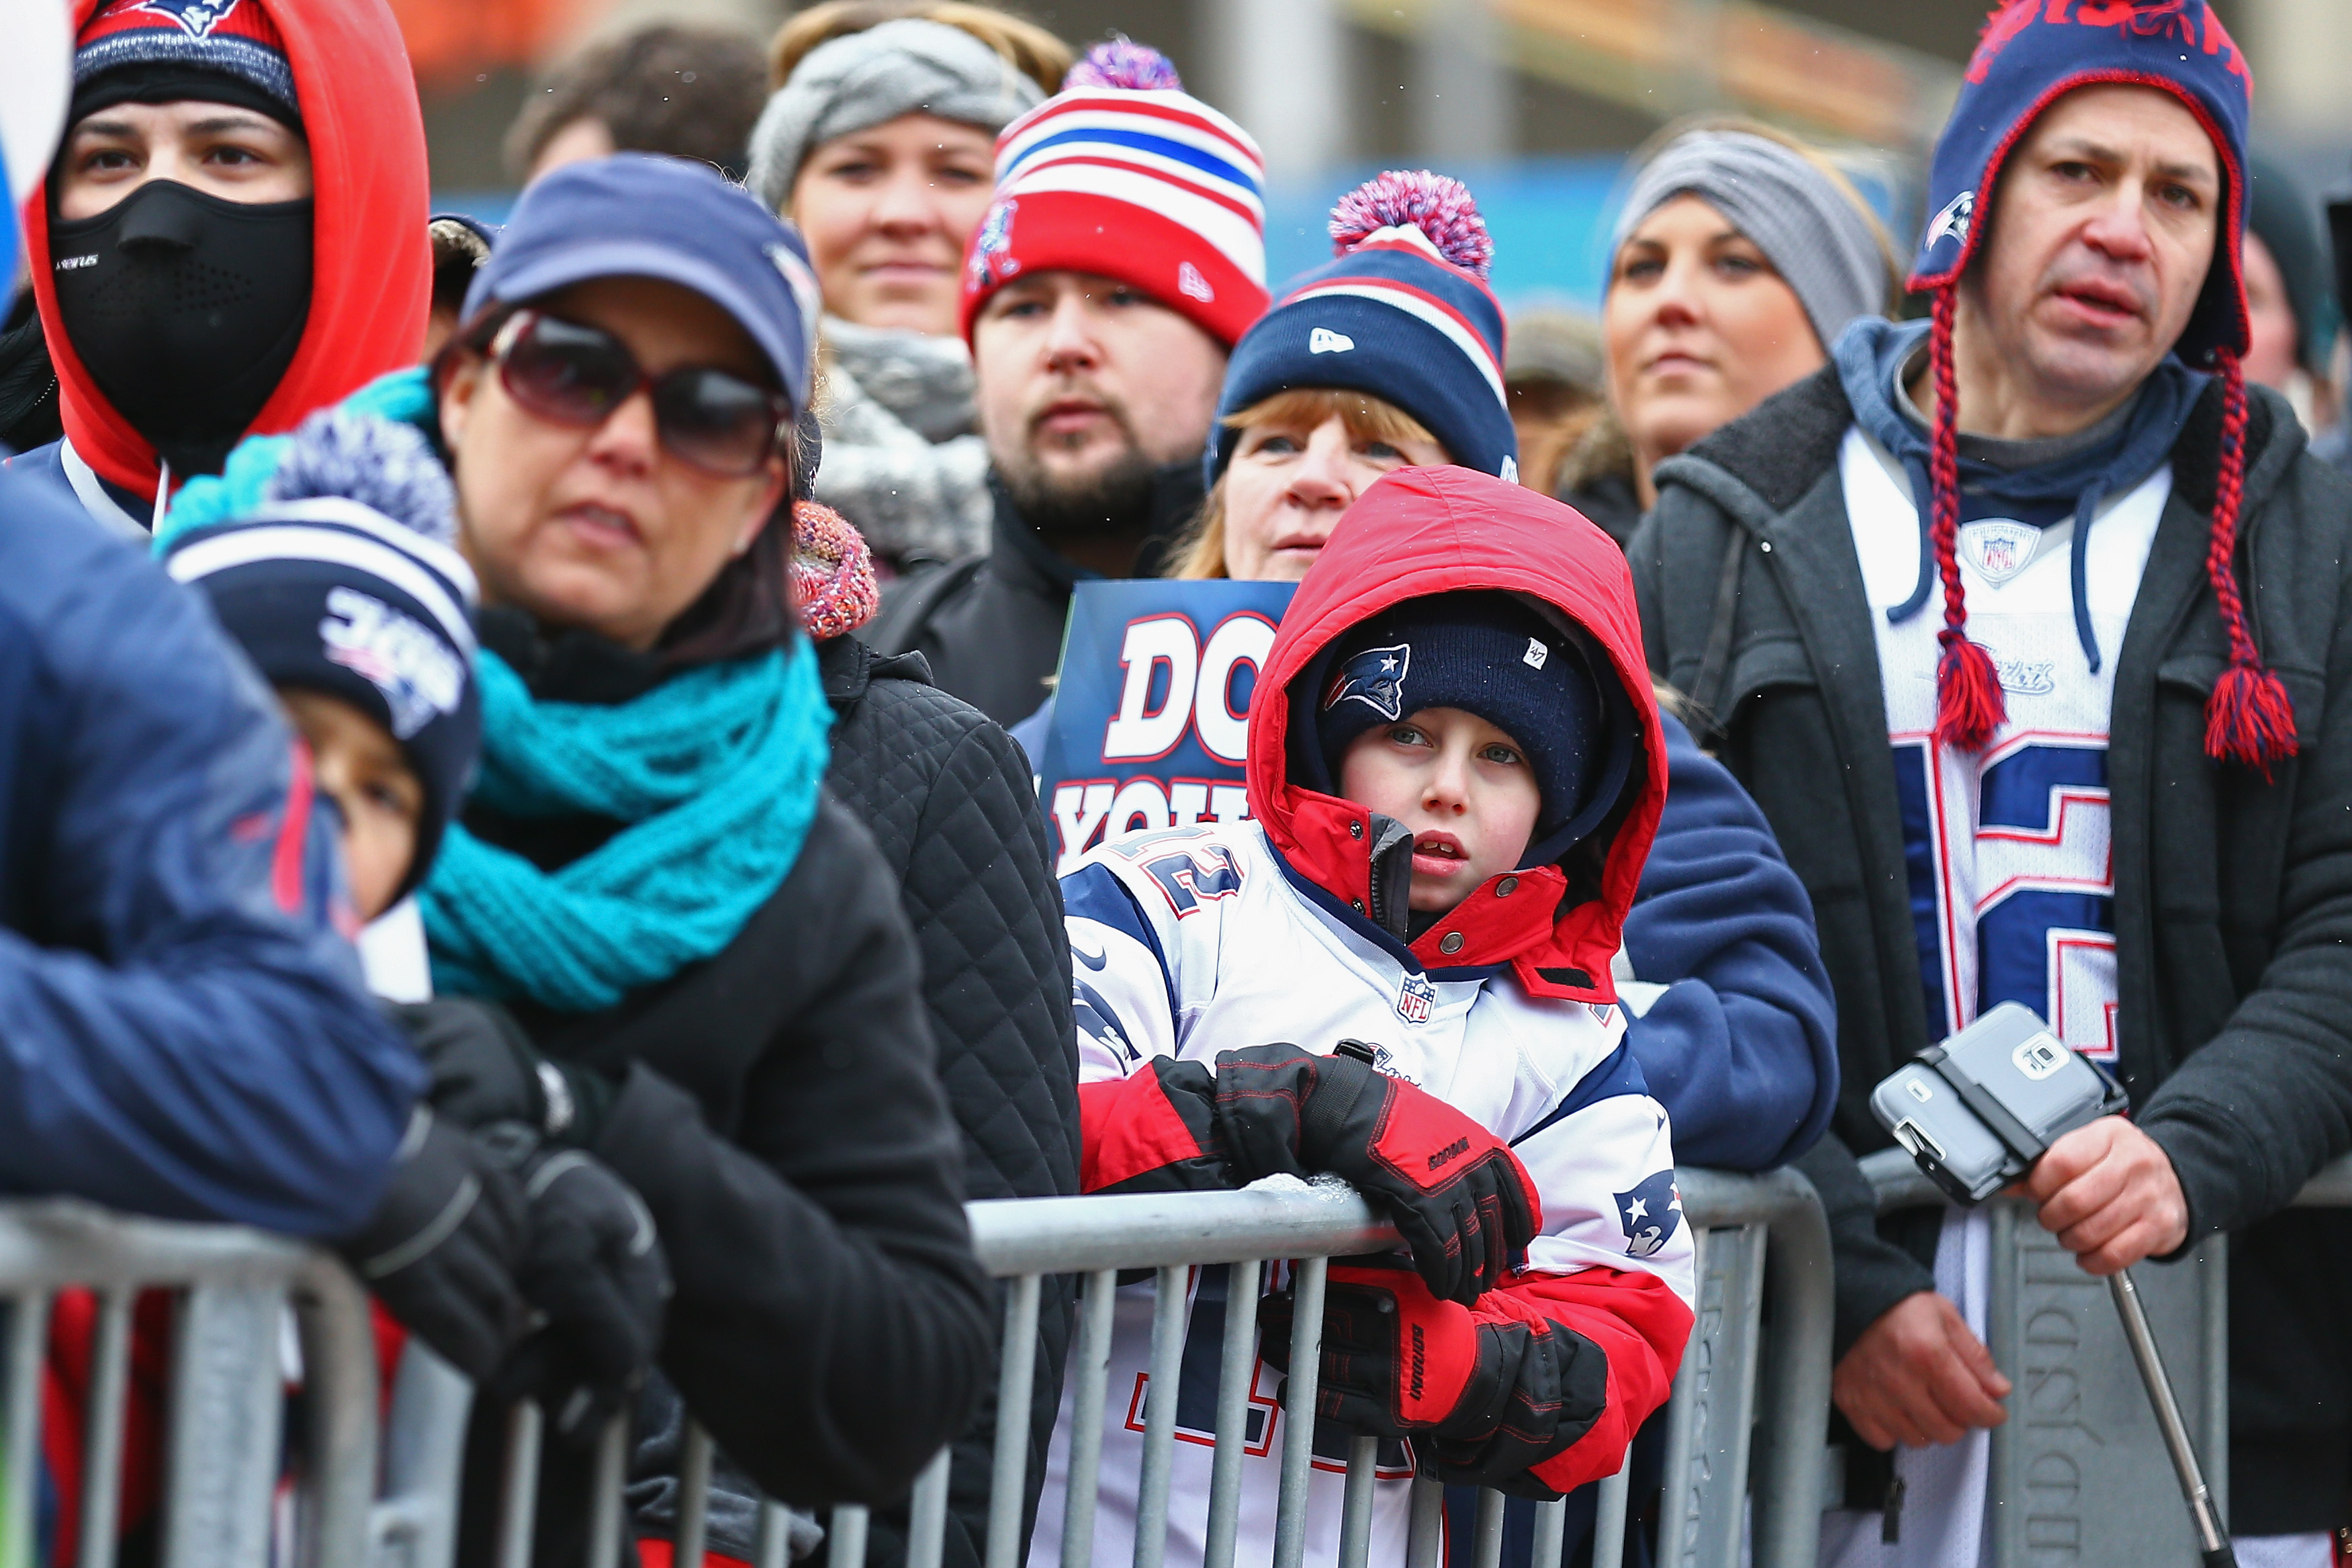 BOSTON, MA - JANUARY 26: Fans attend the New England Patriots Send-Off Rally at City Hall Plaza on January 26, 2015 in Boston, Massachusetts. The Patriots will face the Seattle Seahawks in Superbowl XLIX on Sunday. (Photo by Maddie Meyer/Getty Images)